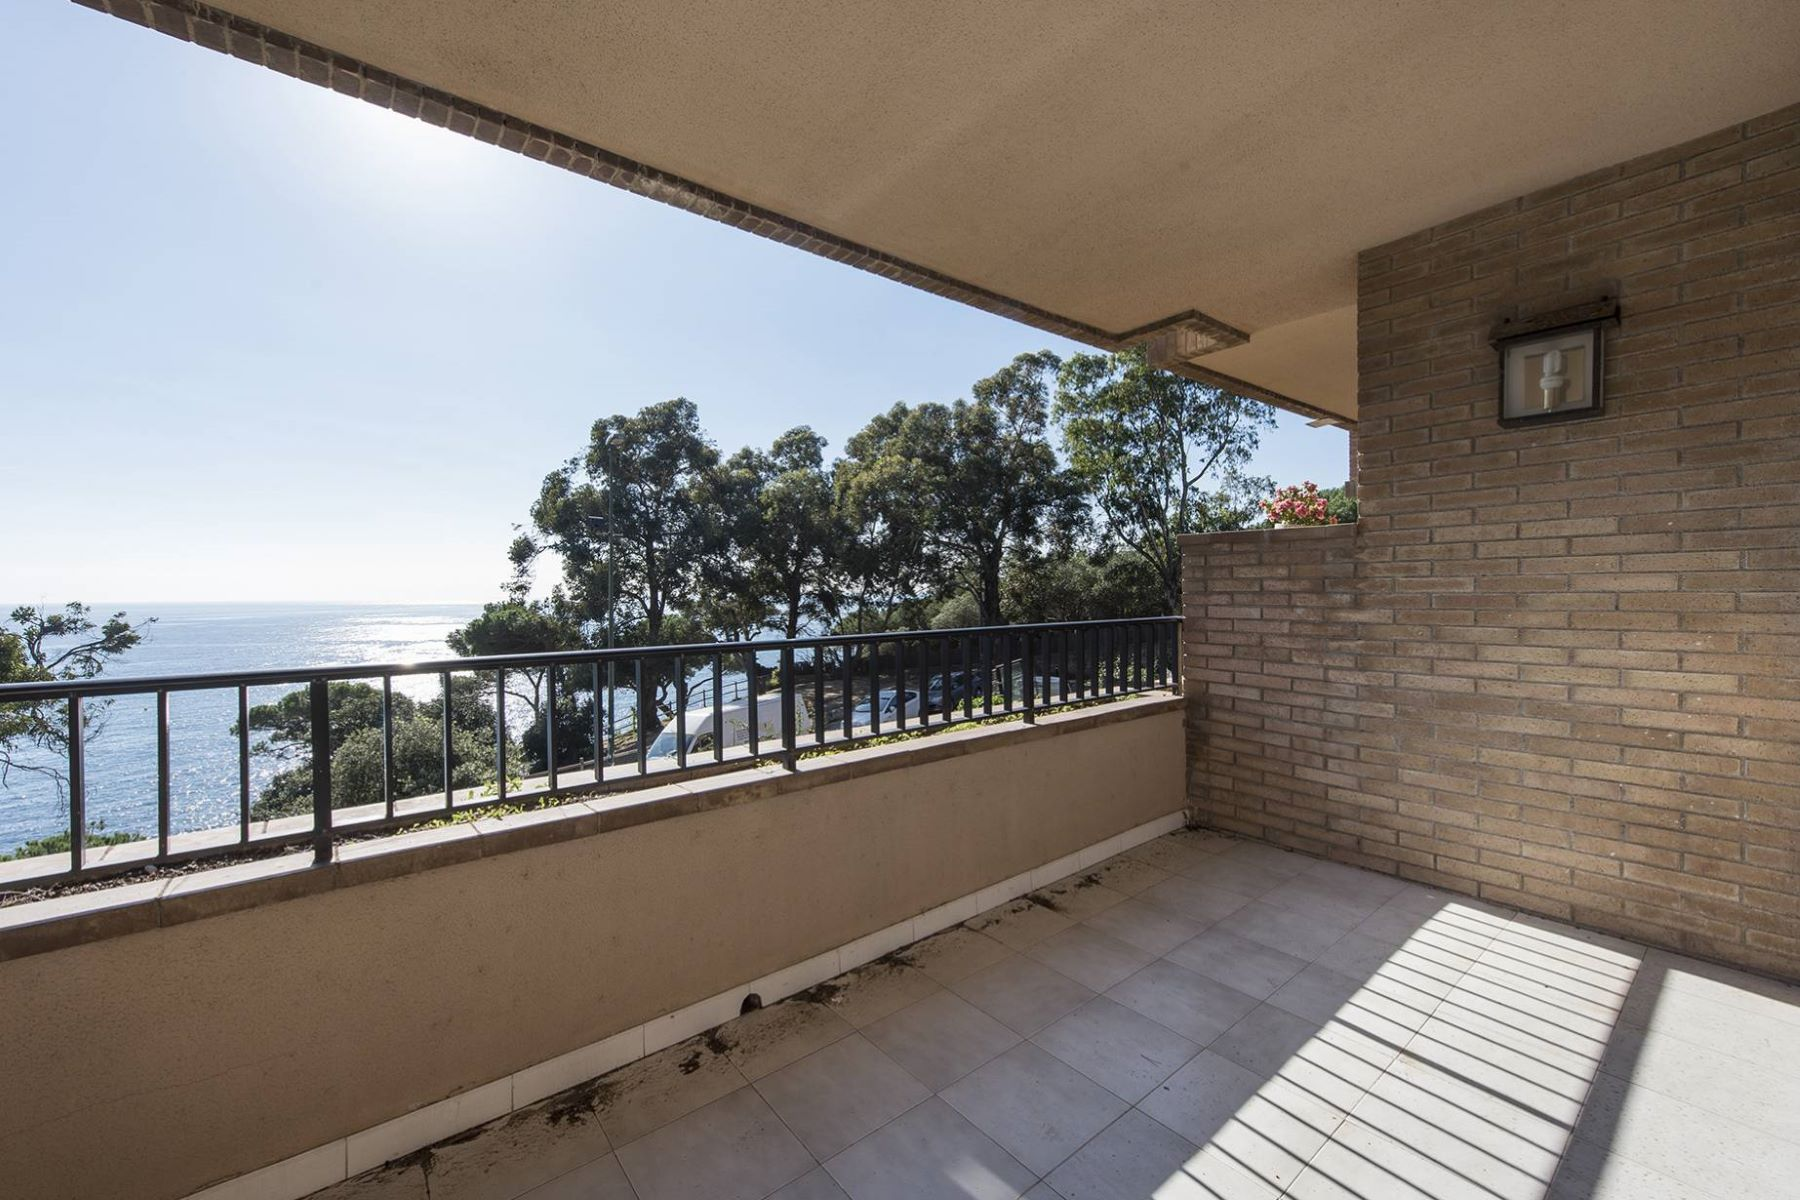 Căn hộ vì Bán tại Apartment on the seafront with fantastic views 50 m from the beach Lloret De Mar, Costa Brava, 17310 Tây Ban Nha